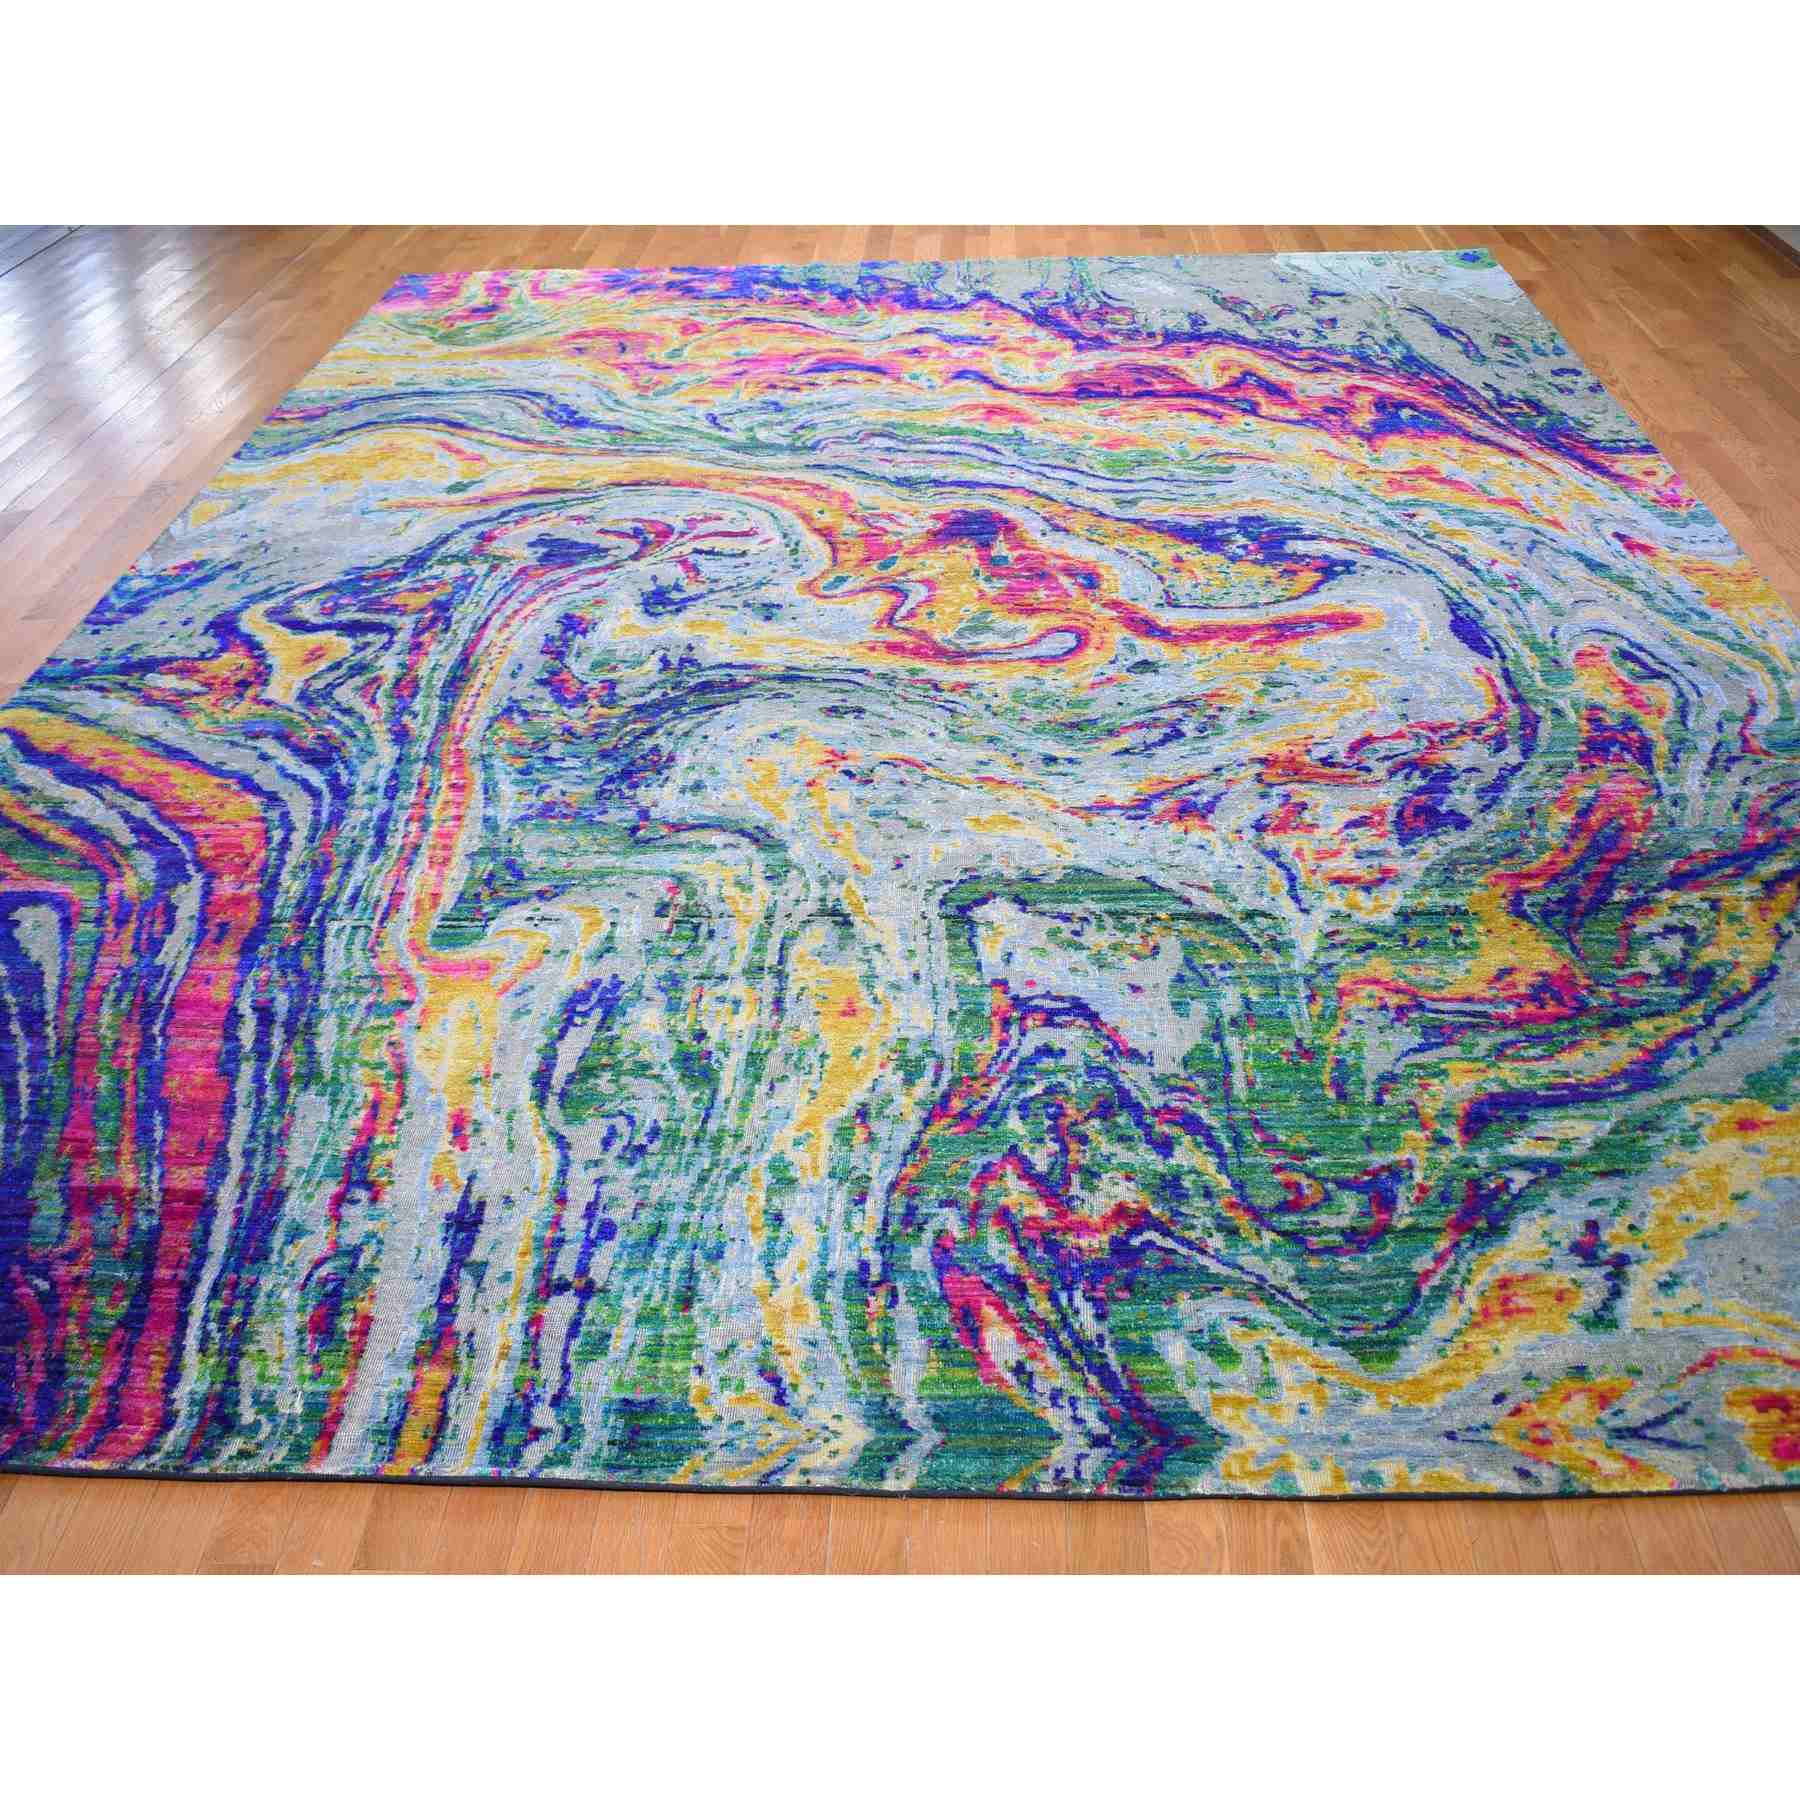 Modern-and-Contemporary-Hand-Knotted-Rug-296350